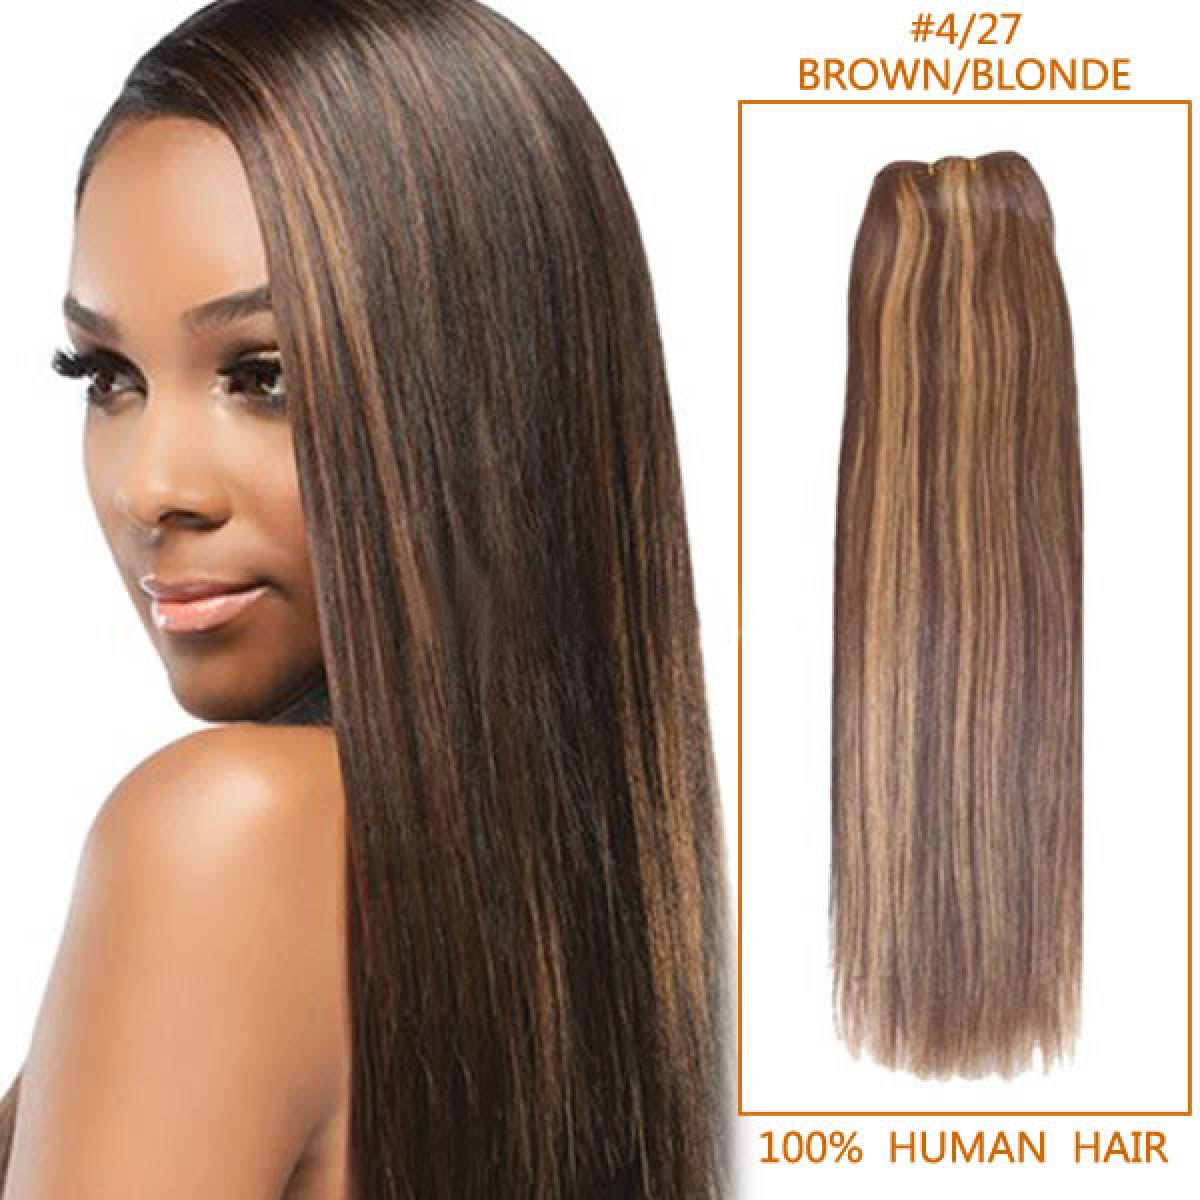 Inch 427 Brownblonde Straight Indian Remy Hair Wefts